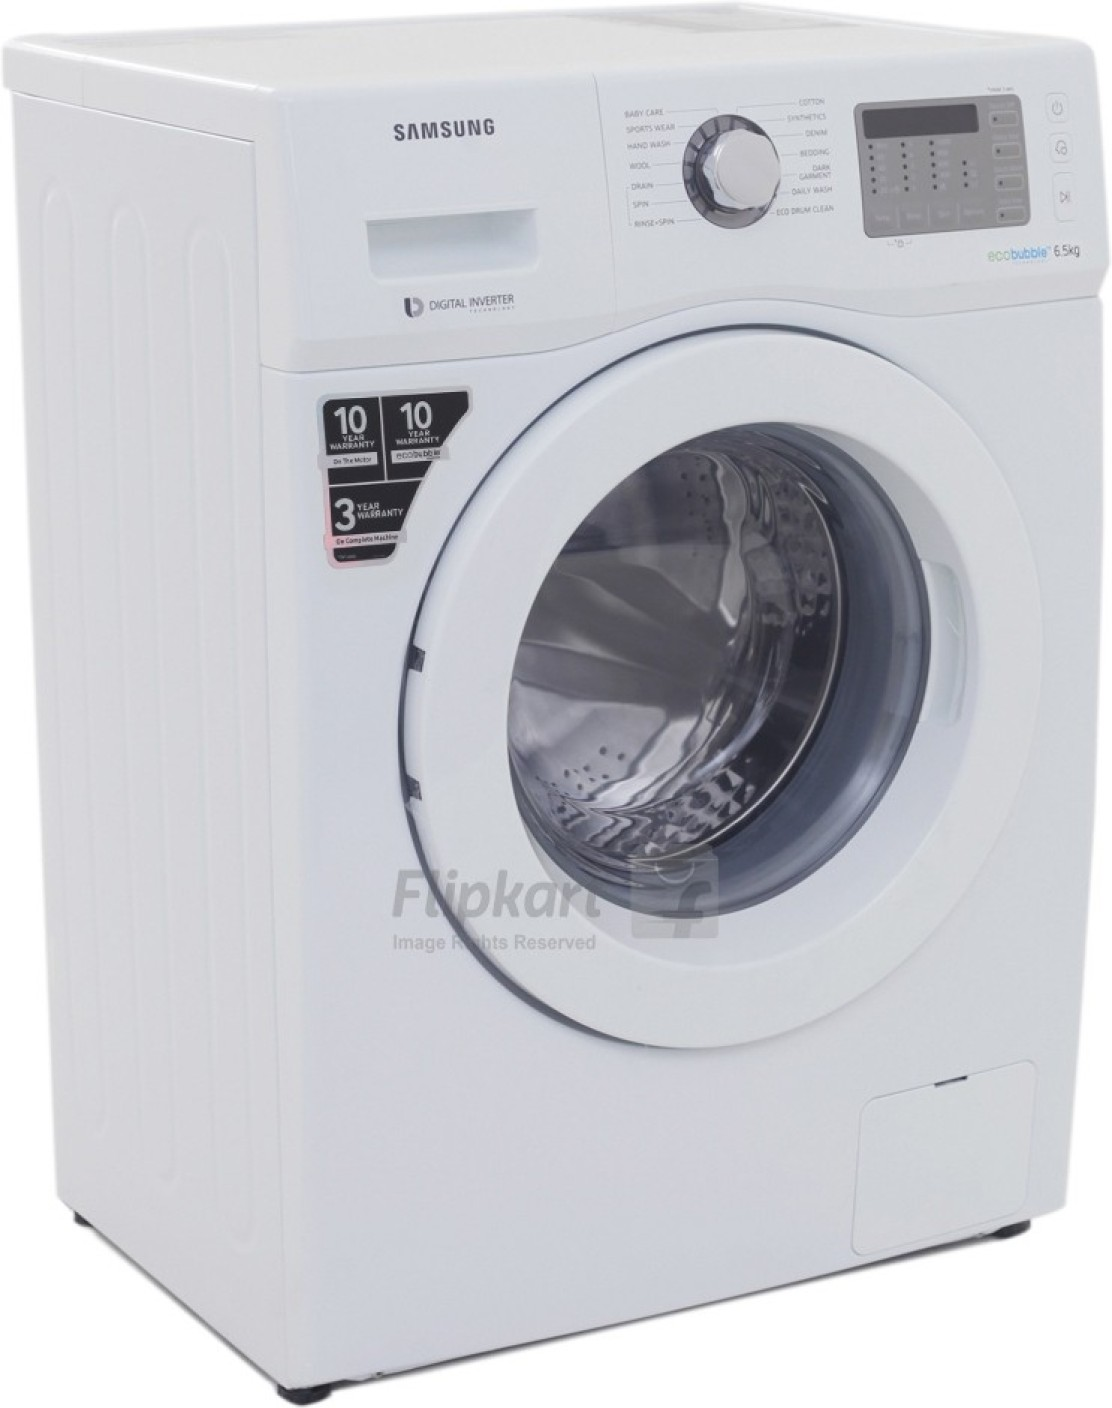 Samsung 6.5 kg Fully Automatic Front Load Washing Machine ...